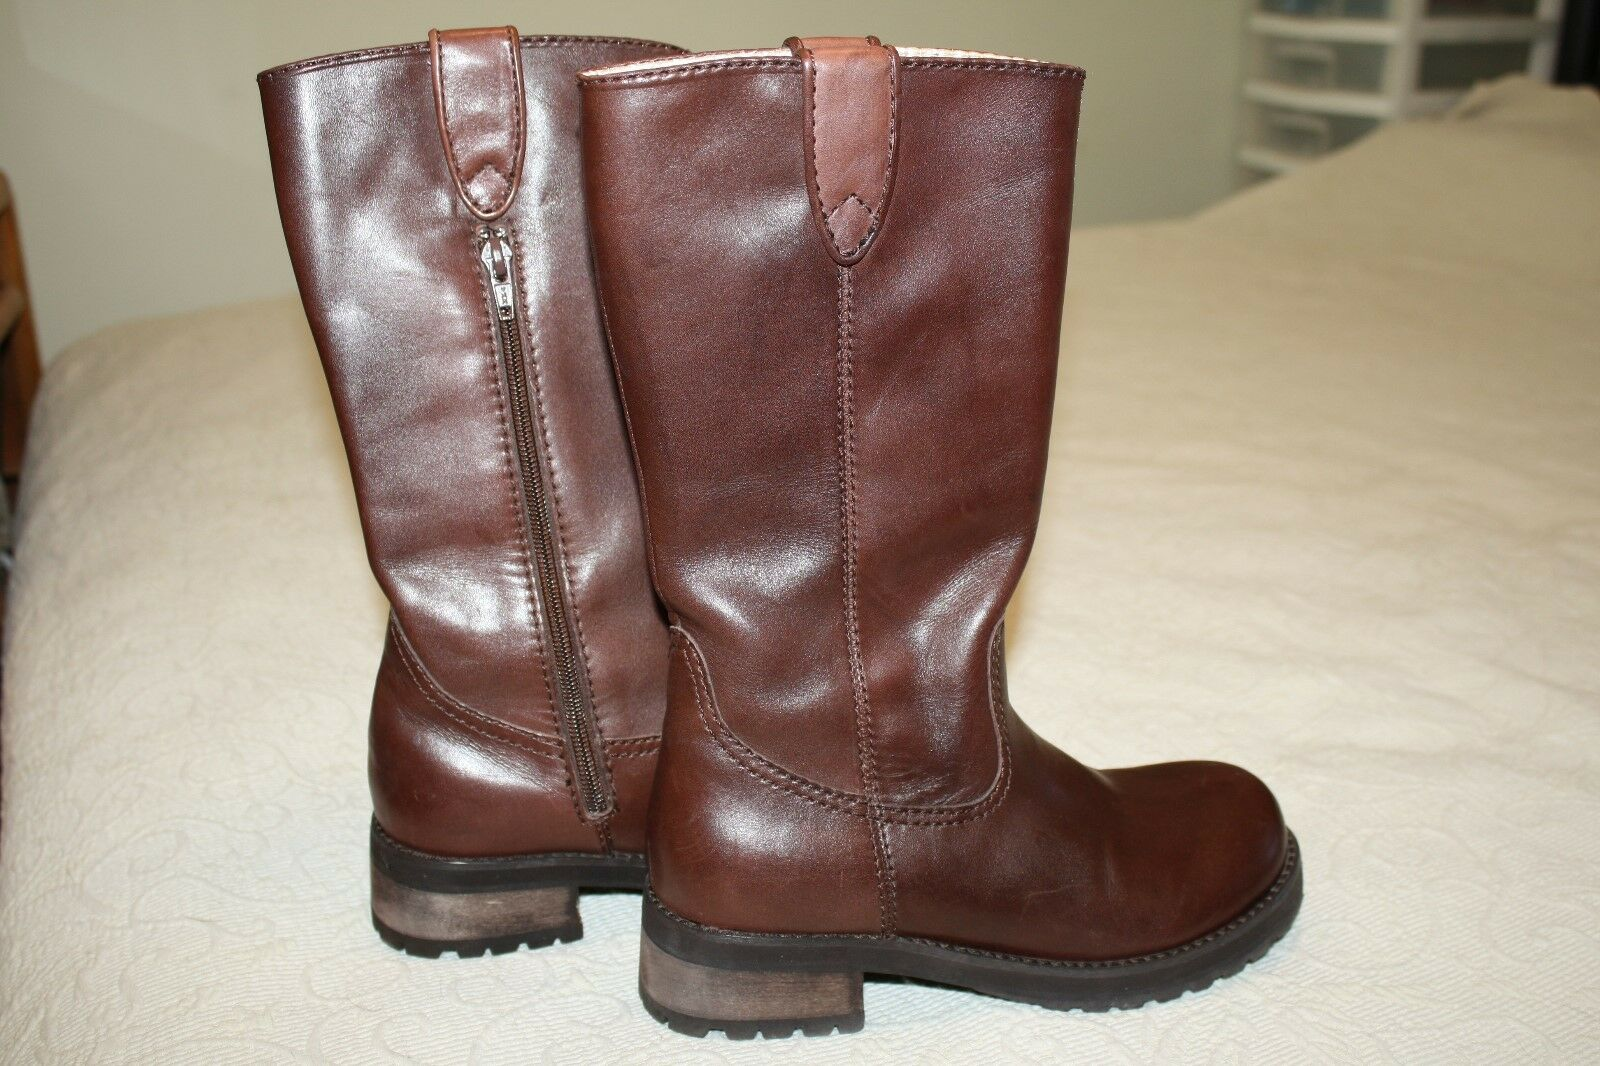 Brown Leather Boots Zipper Size 6 1 2 M Steve Madden 1 1 2 heels